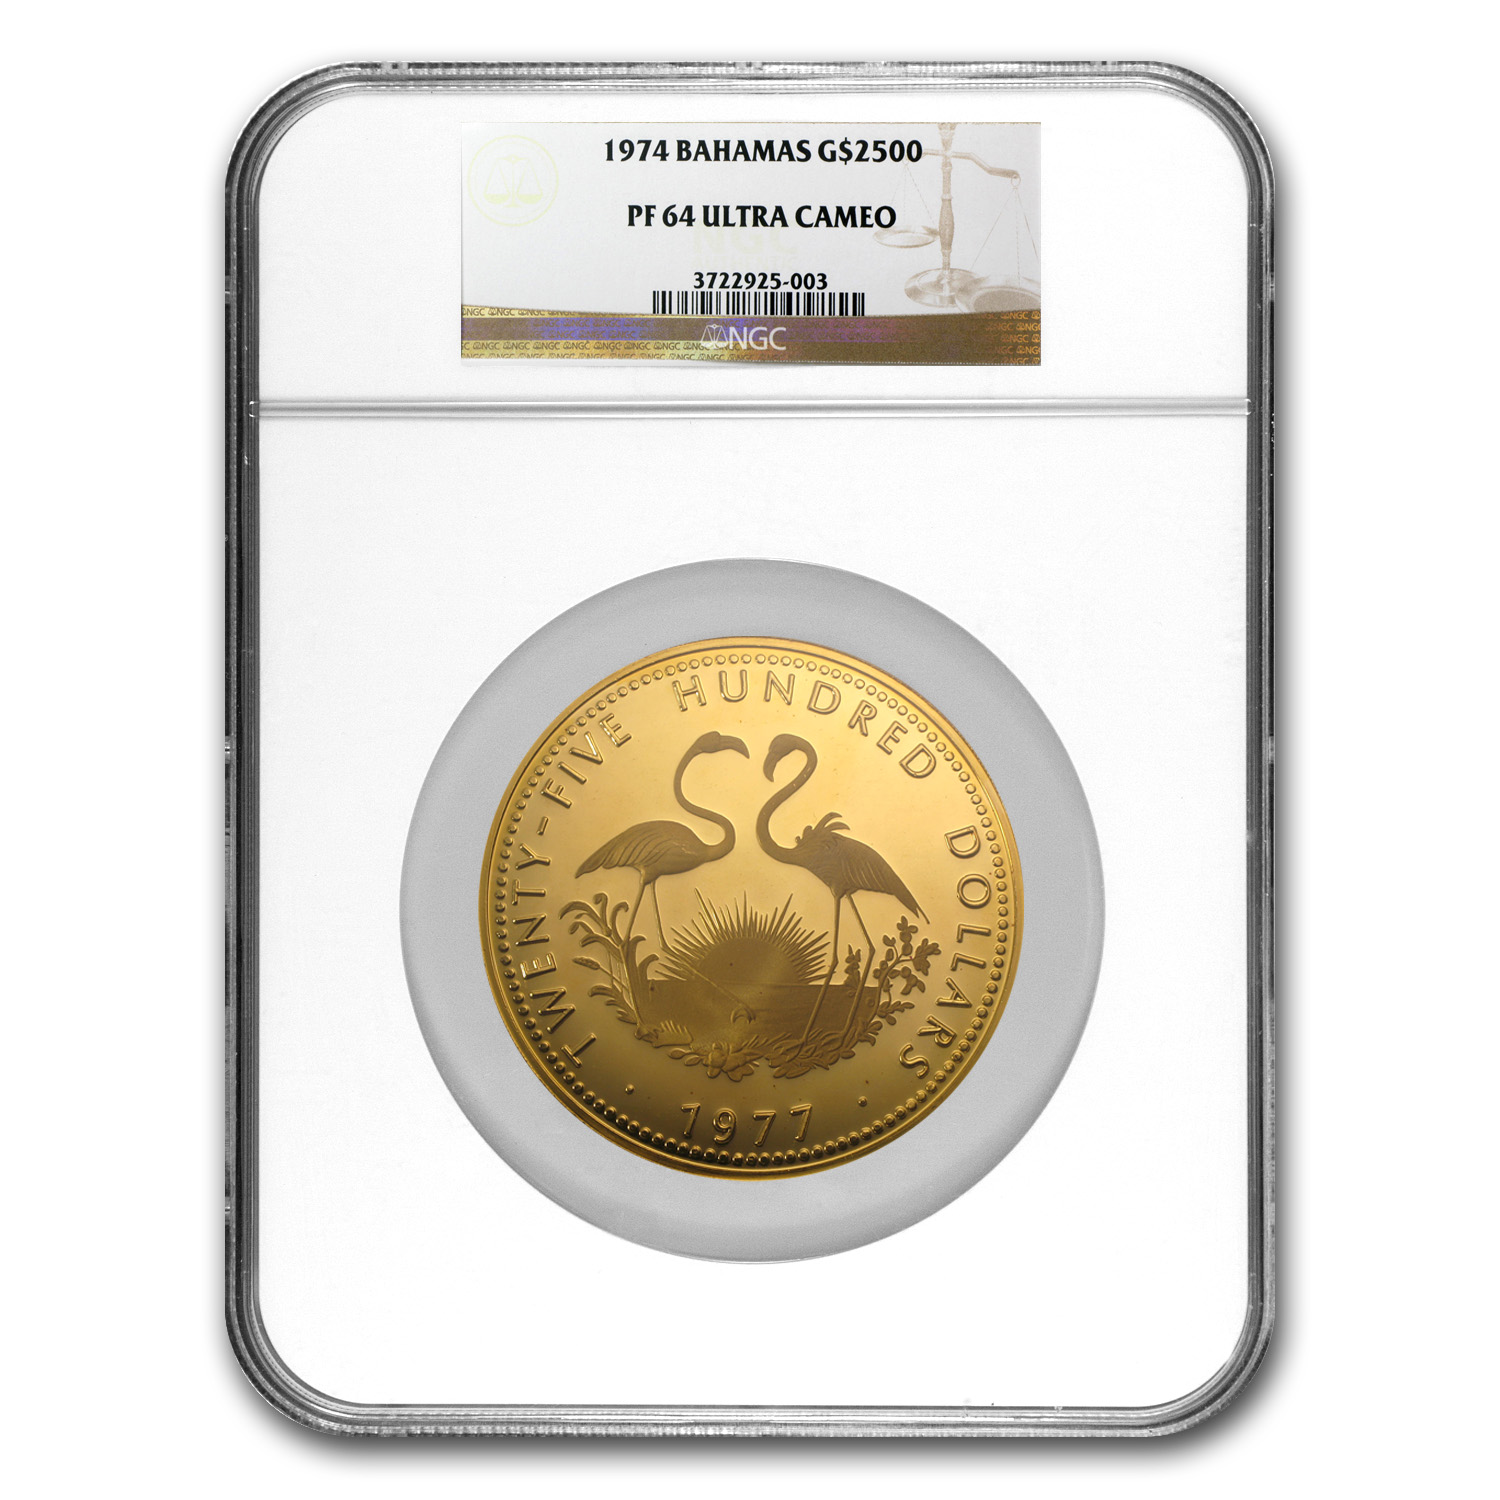 1974 Bahamas 12 oz Proof Gold $2500 PF-64 NGC